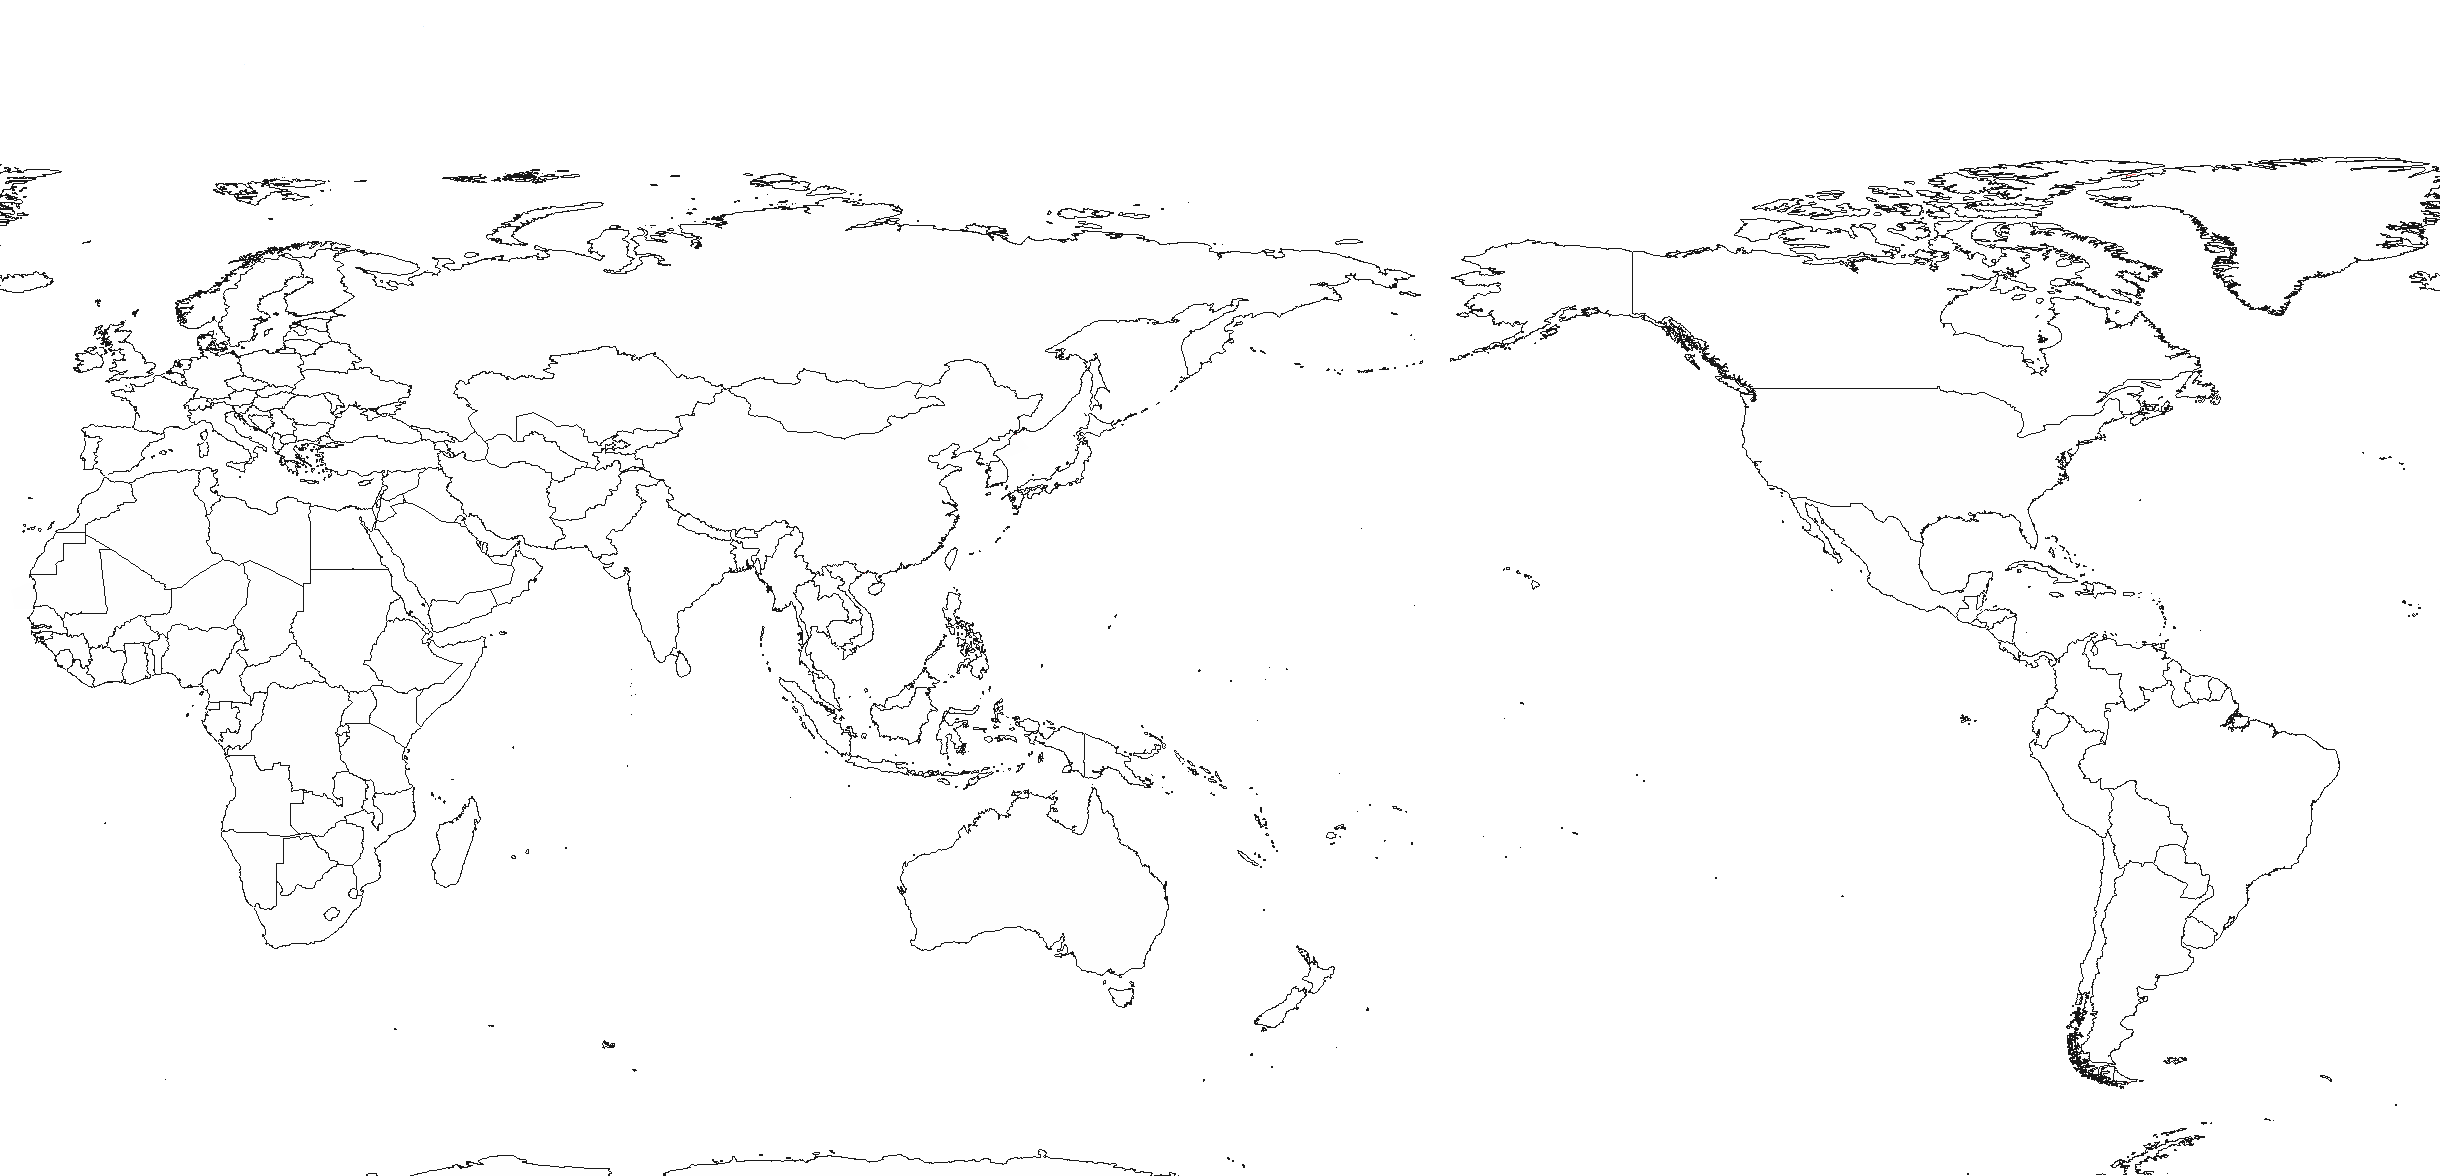 Filewhite world mappacfic centered blankg wikimedia commons filewhite world mappacfic centered blankg gumiabroncs